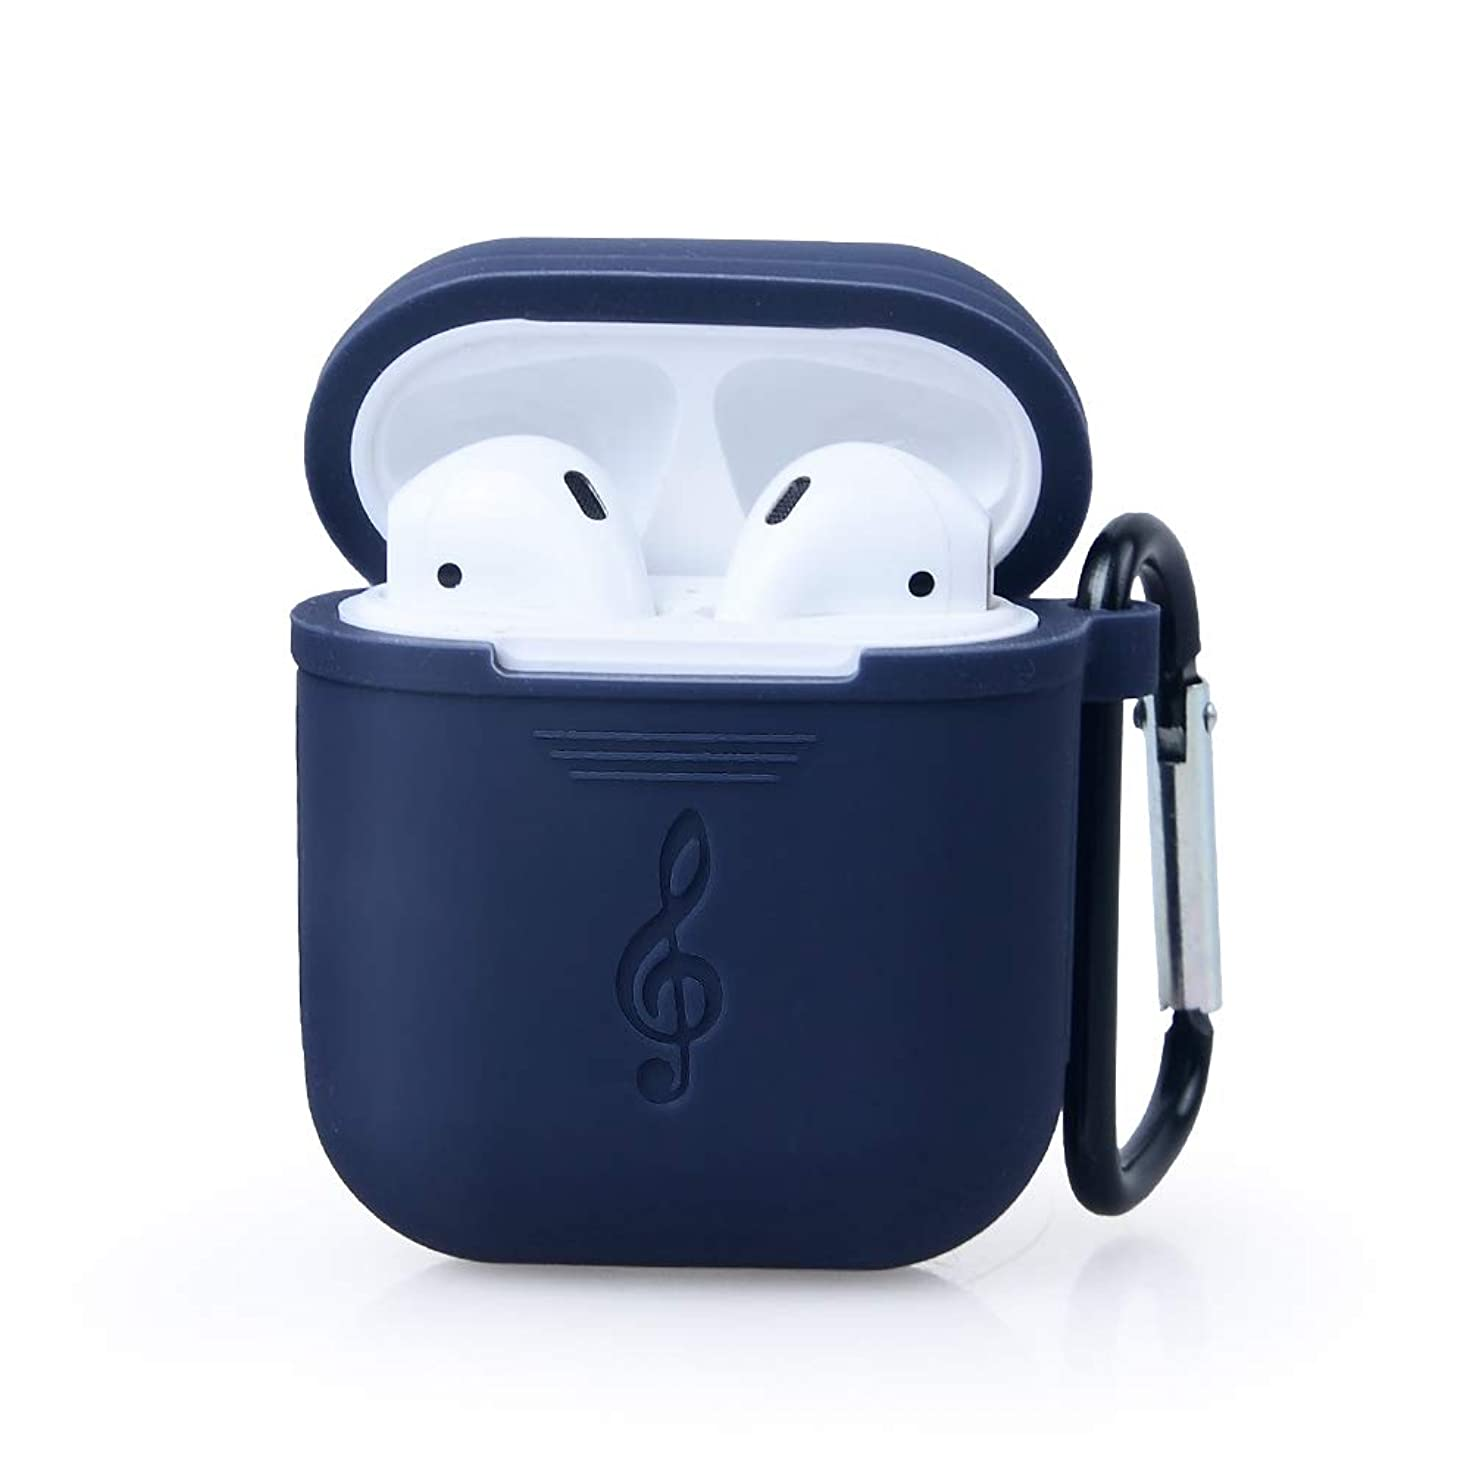 Waterproof Protective Silicone Case Cover Skin with Keychain for Apple Airpods Charging Case (Blue)